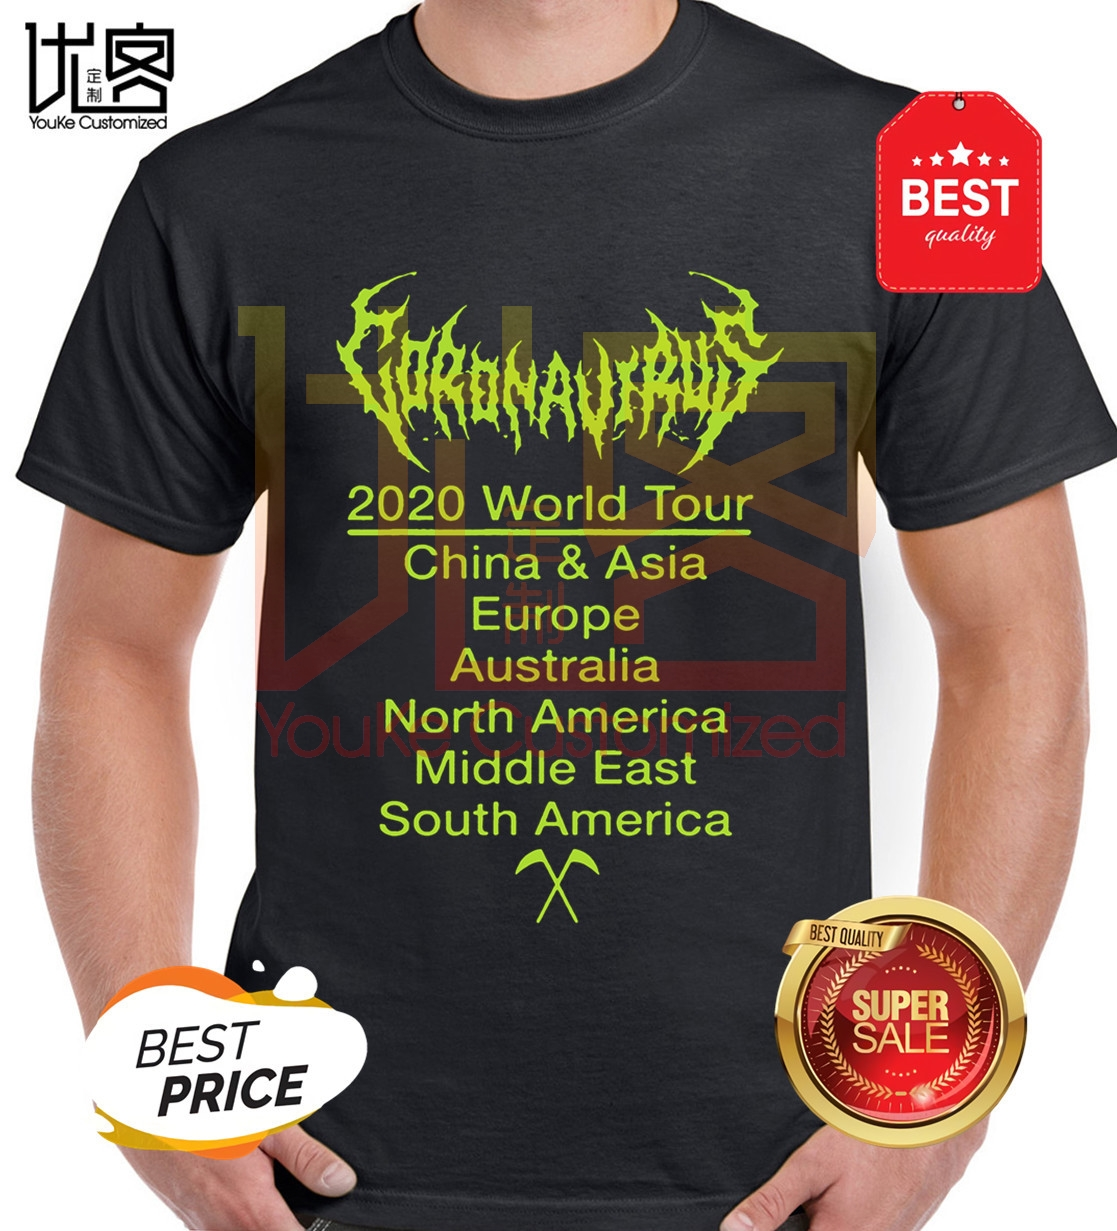 Coronavirus-world-tour-china-asia-europe-t-shirts Men's Women's 100% Cotton Short Sleeves Tops Tee Printed Crewneck T-shirt